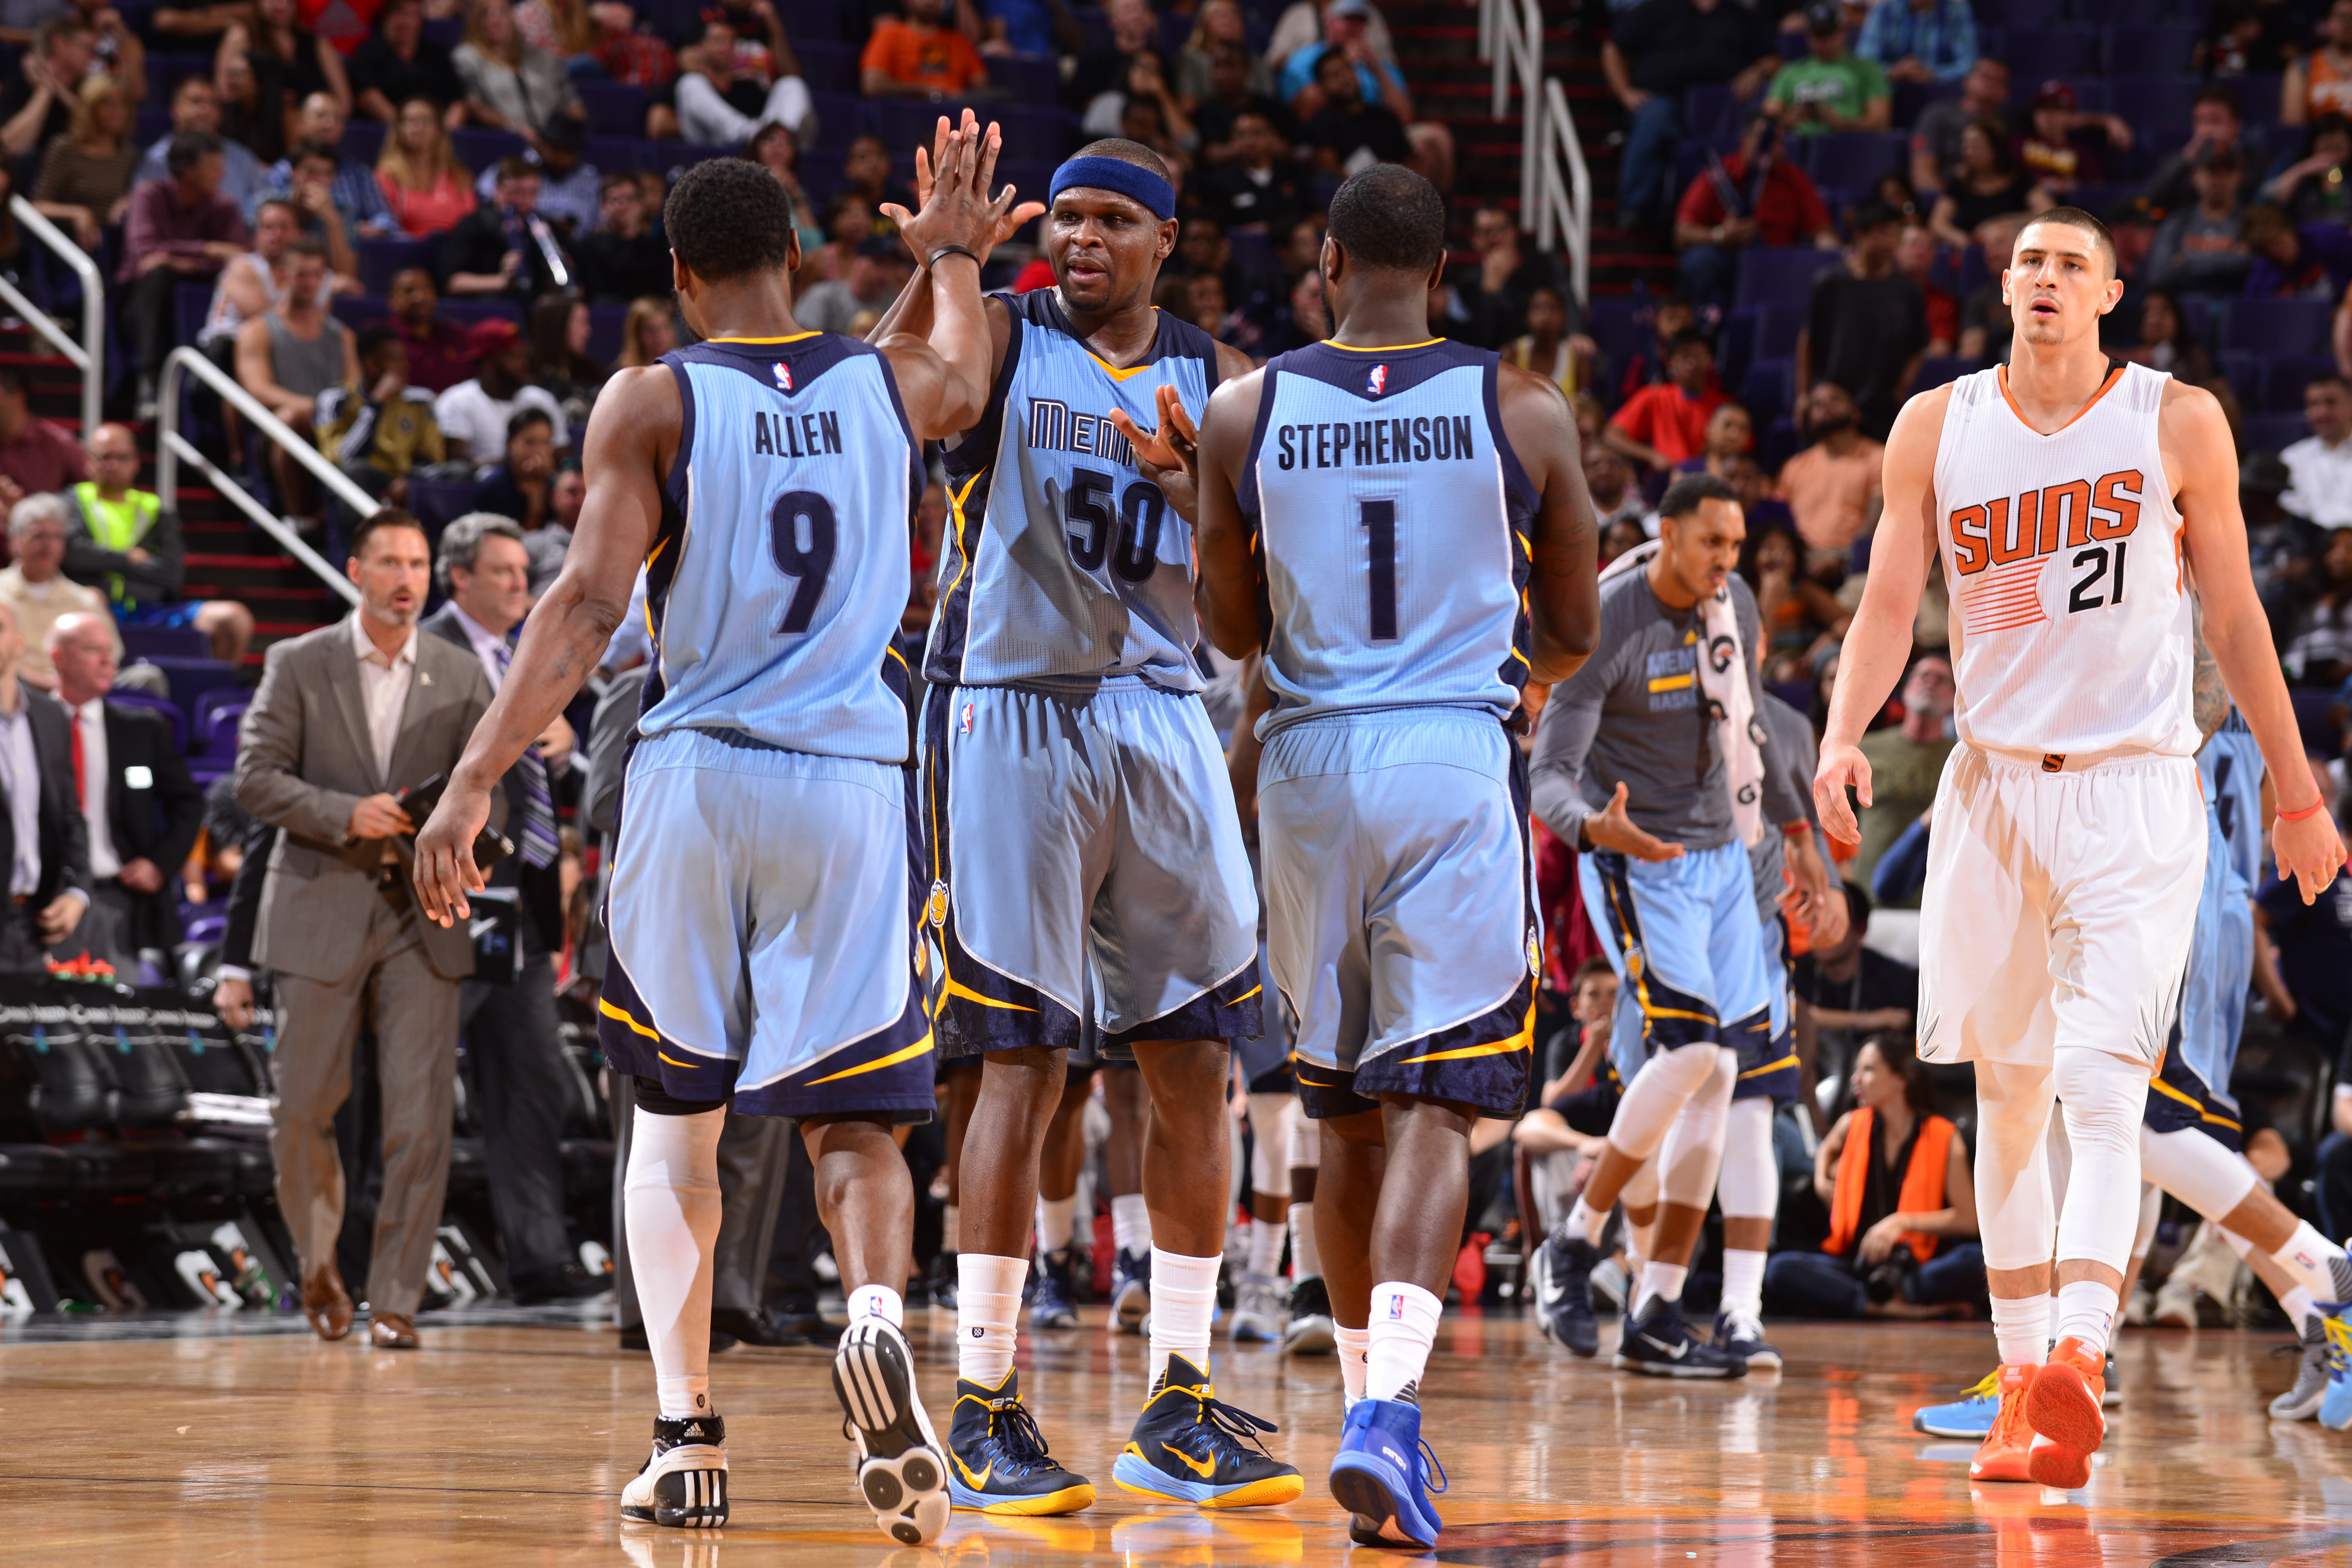 PHOENIX, AZ  - MARCH 21: Zach Randolph #50 high fives teammate Tony Allen #9 and Lance Stephenson #1 of the Memphis Grizzlies during the game against the Phoenix Suns on March 21, 2016 at Talking Stick Resort Arena in Phoenix, Arizona. (Photo by Barry Gos